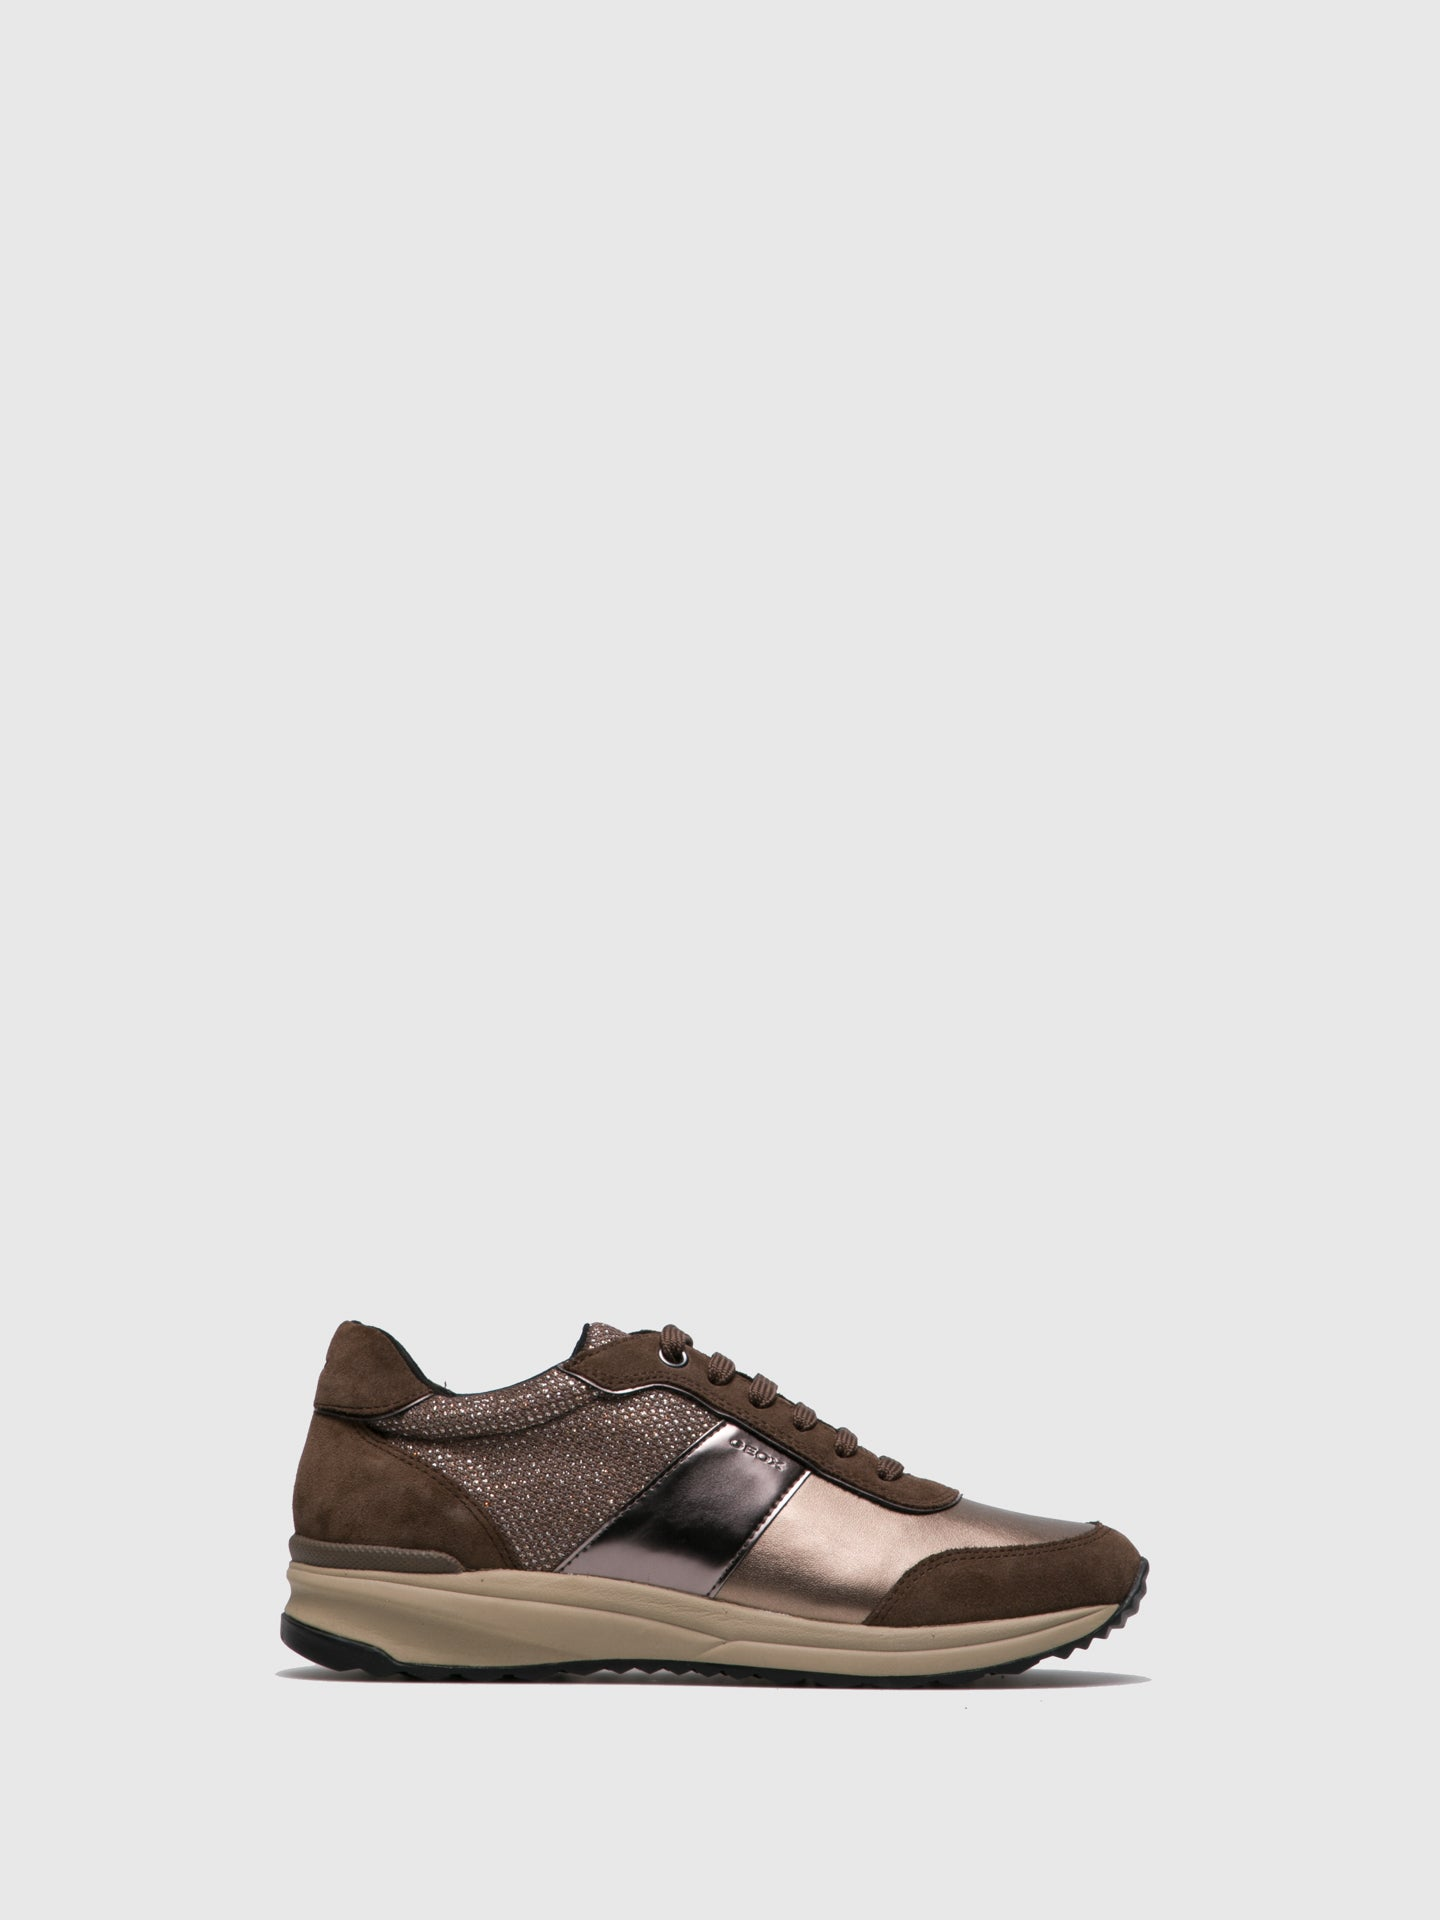 Geox Zapatillas con Cordones en color Camel